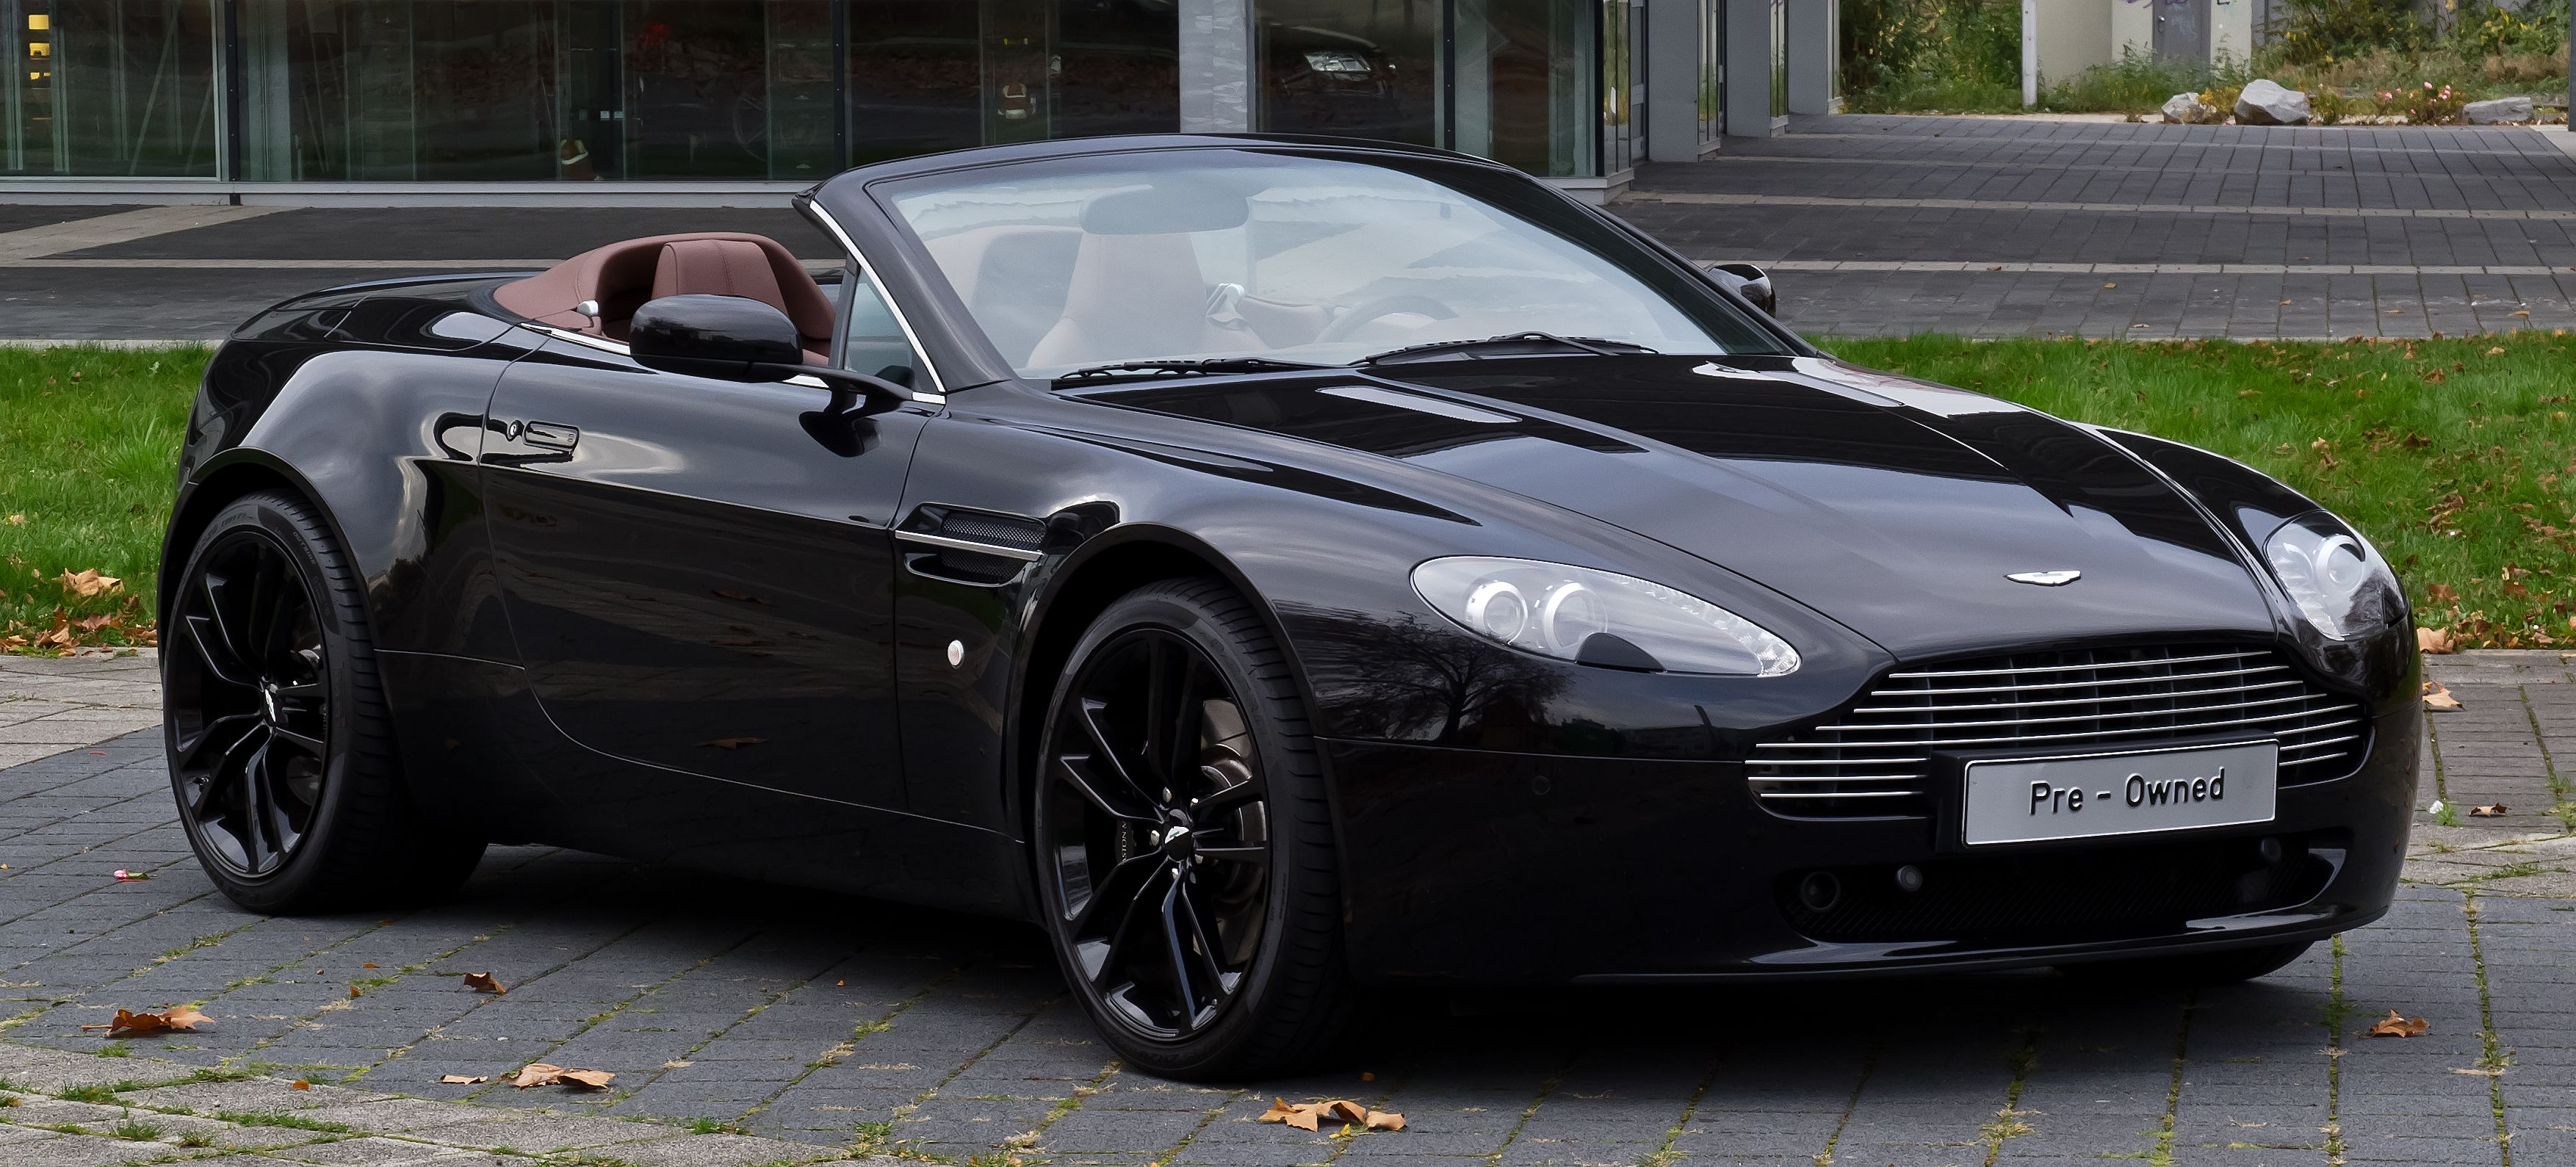 book aston martin v8 vantage roadster #luxurycar on rent at lowest